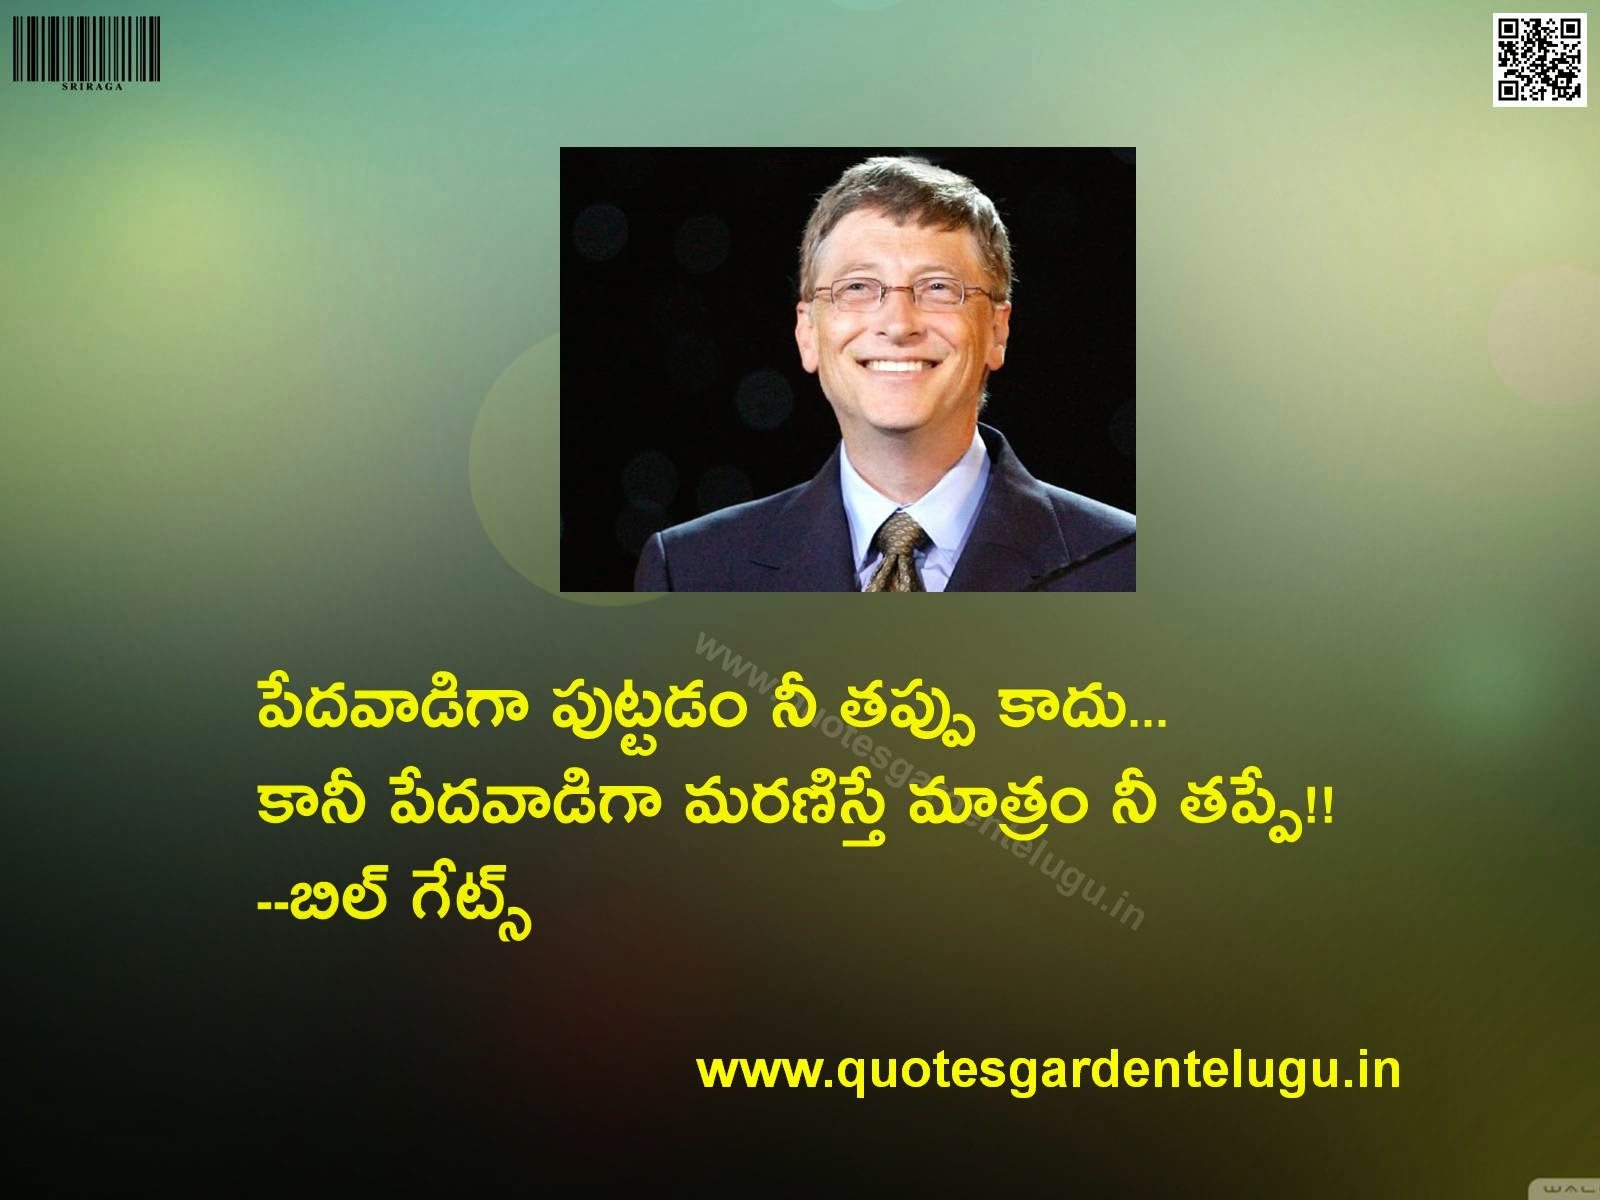 BeTelugu-Whatsapp-Status-Inspirational-Quotes-Good-reads-with-Images-HDwallpapers